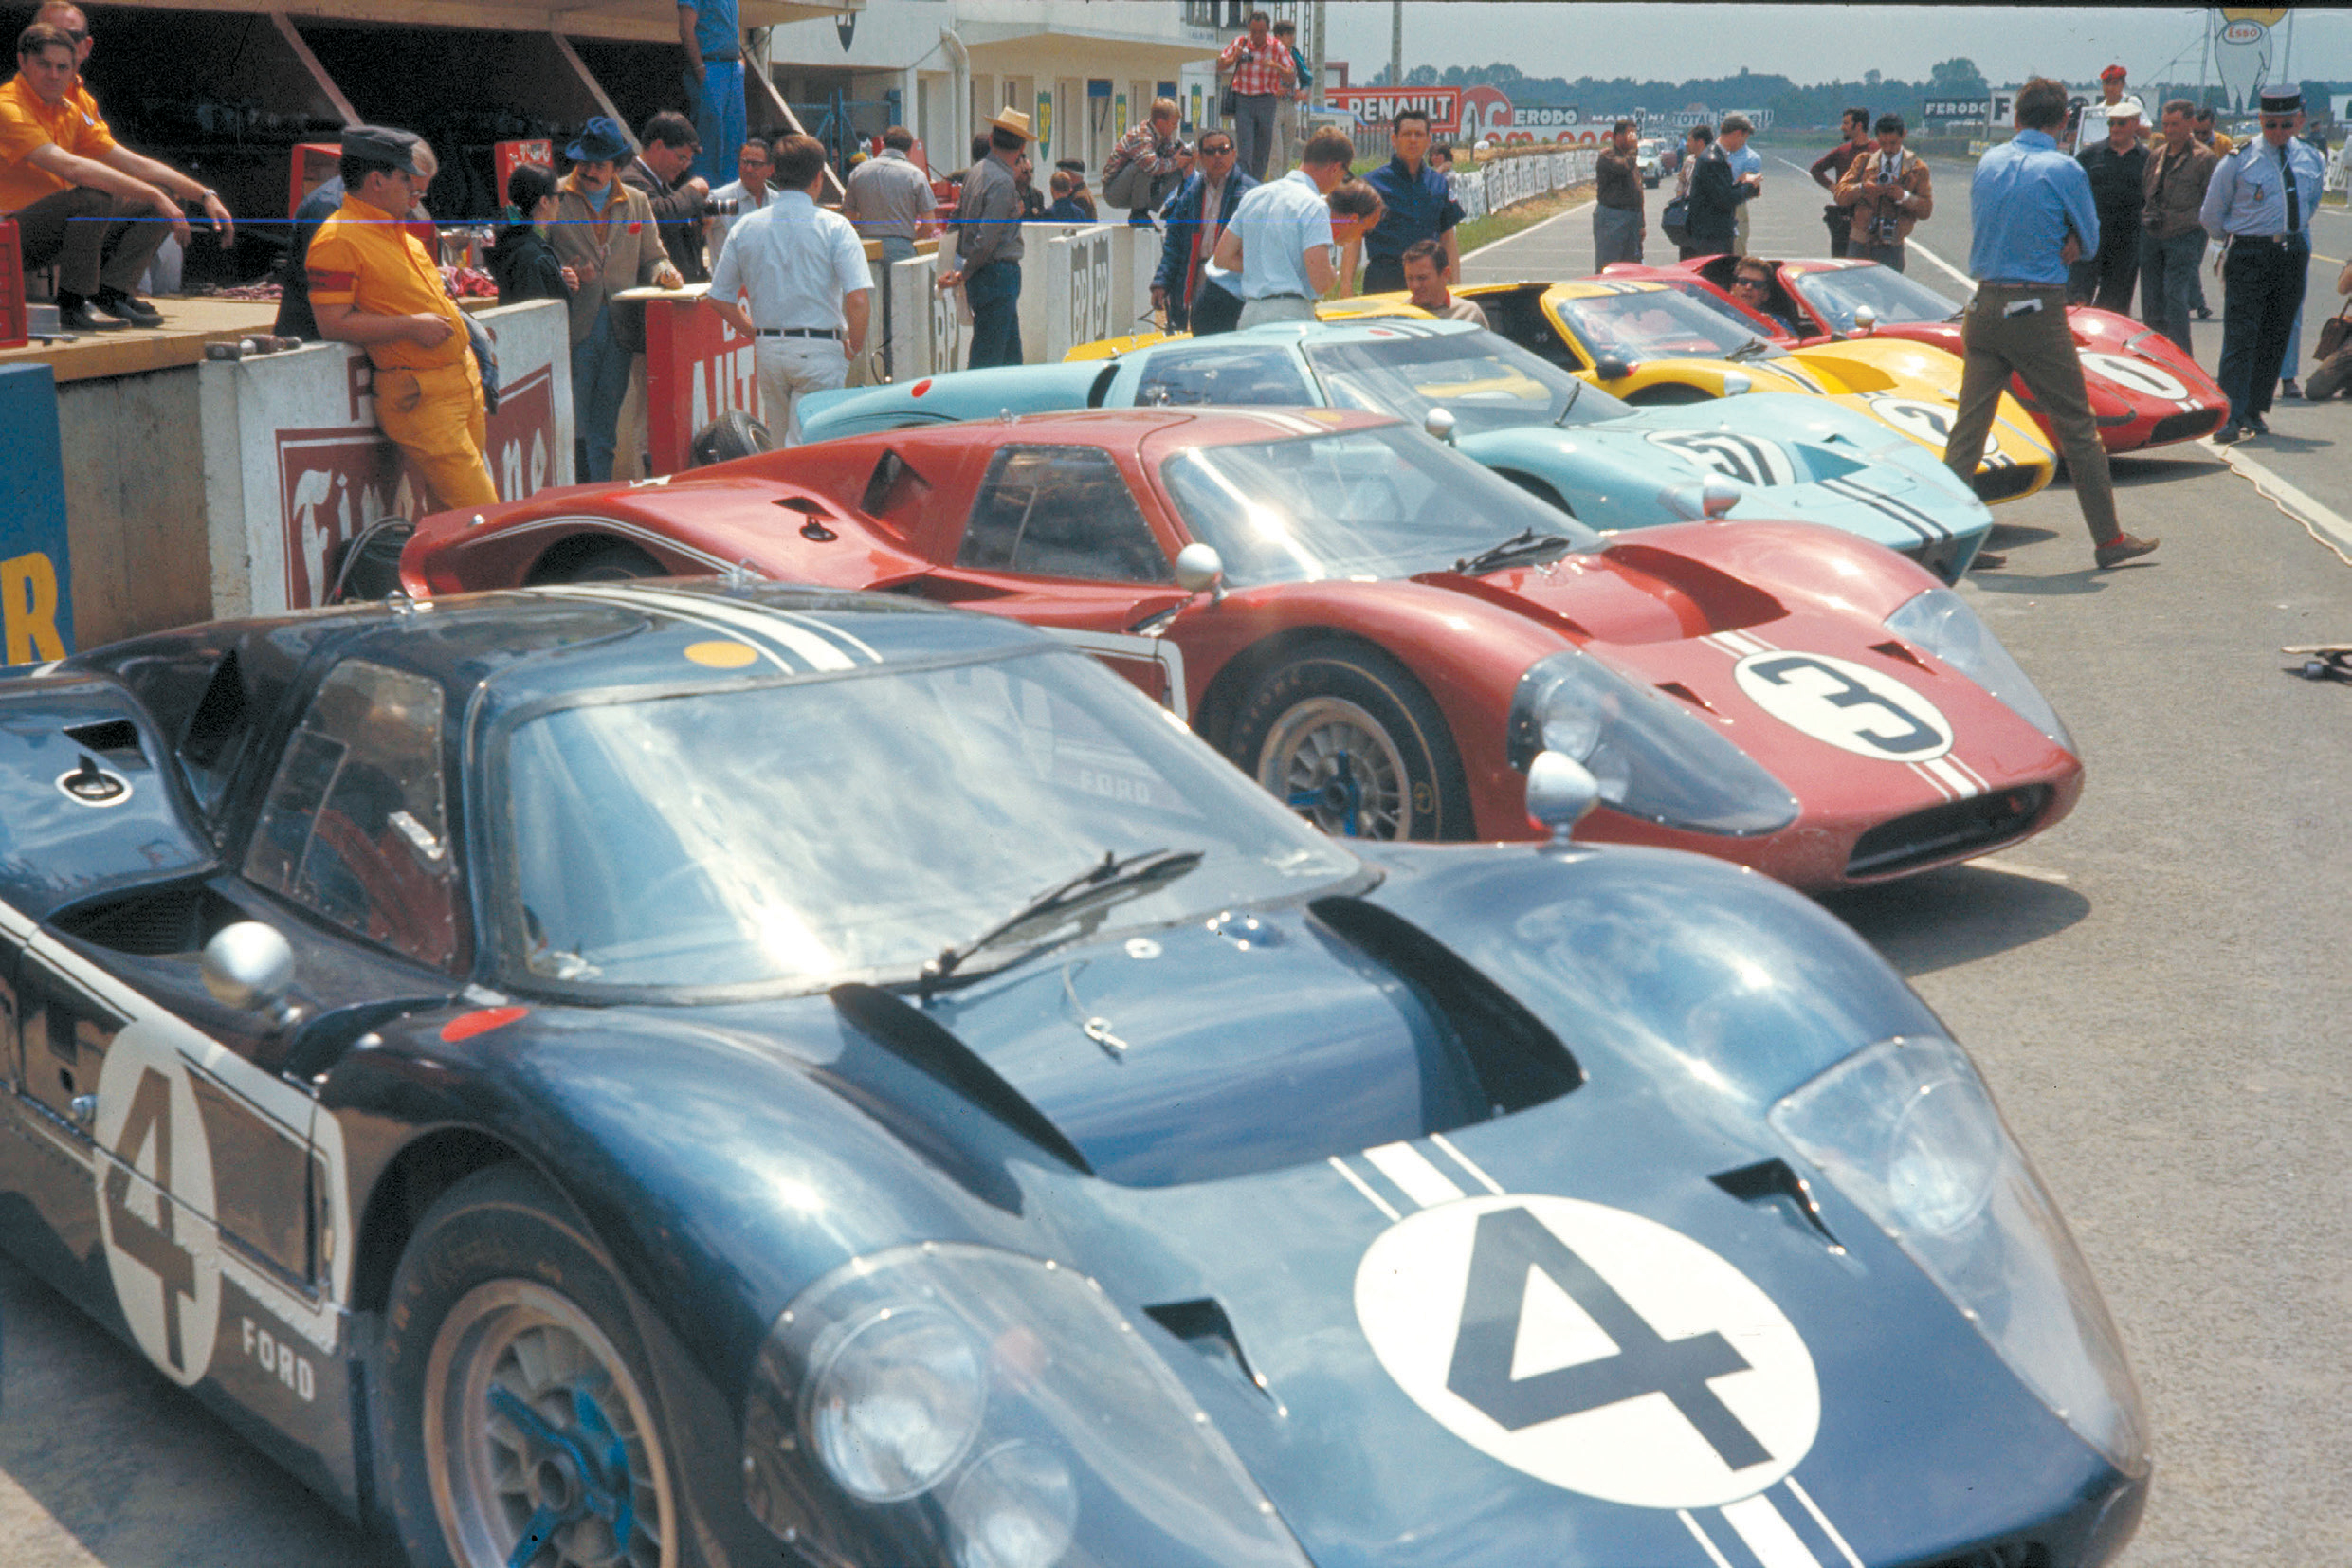 Another view of the Ford team showing all four Mark IVs and the Shelby American Mark II.